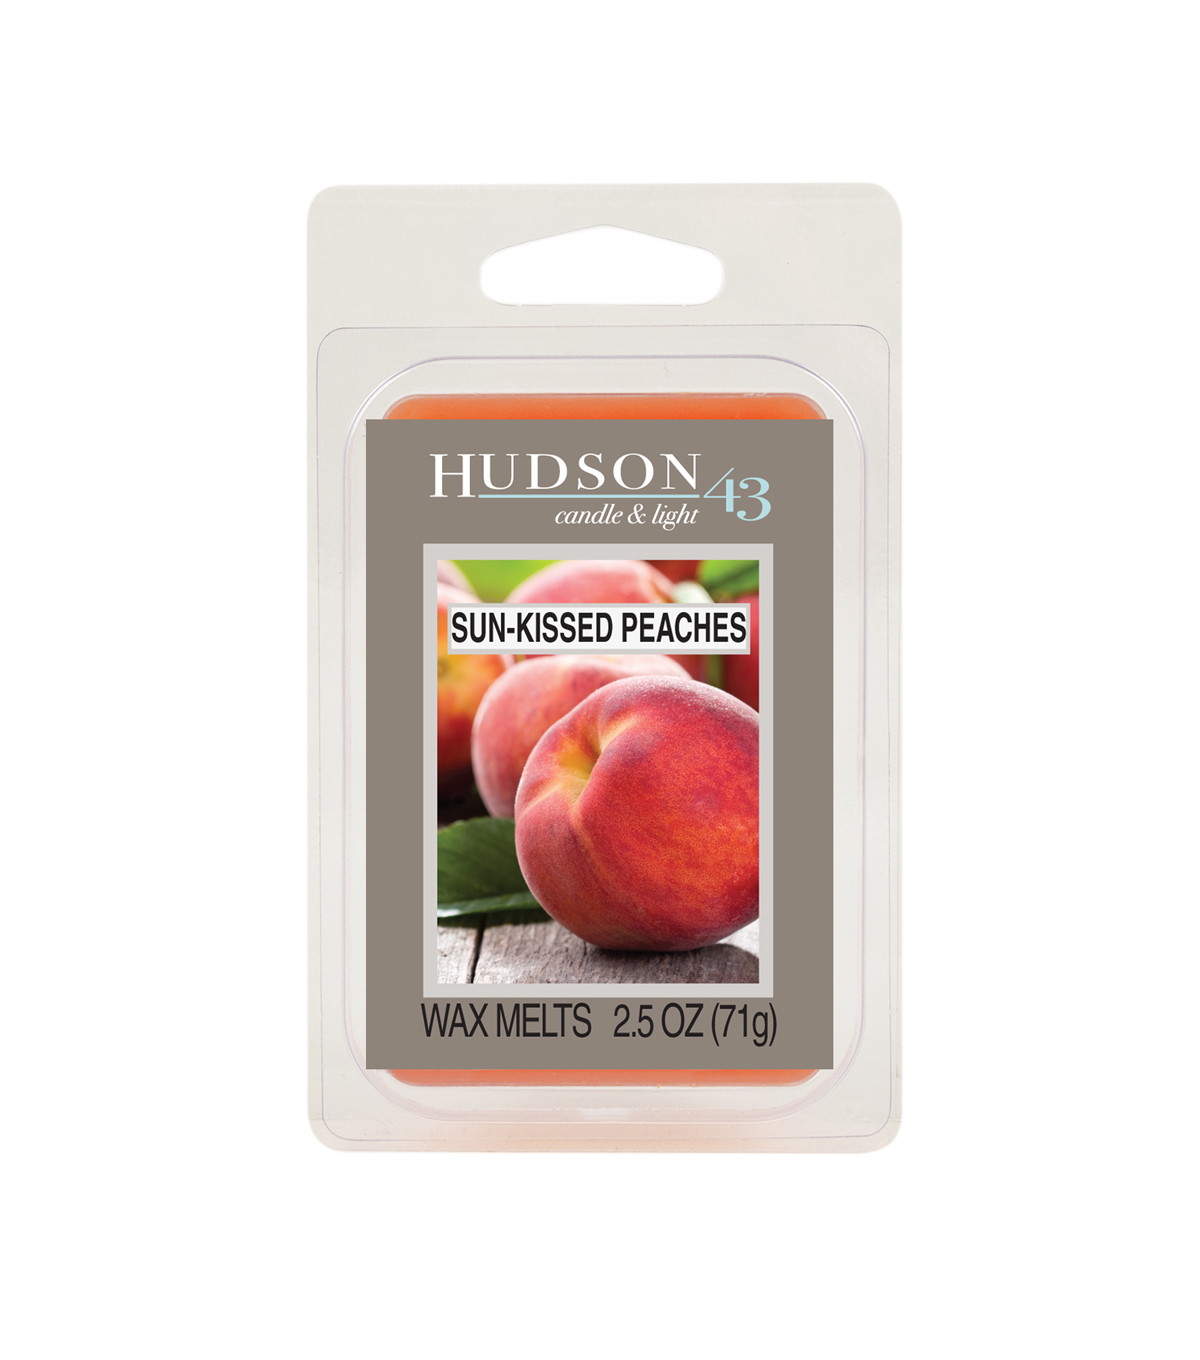 Hudson 43™ Candle & Light Collection Wax Melt-Sun Kissed Peaches